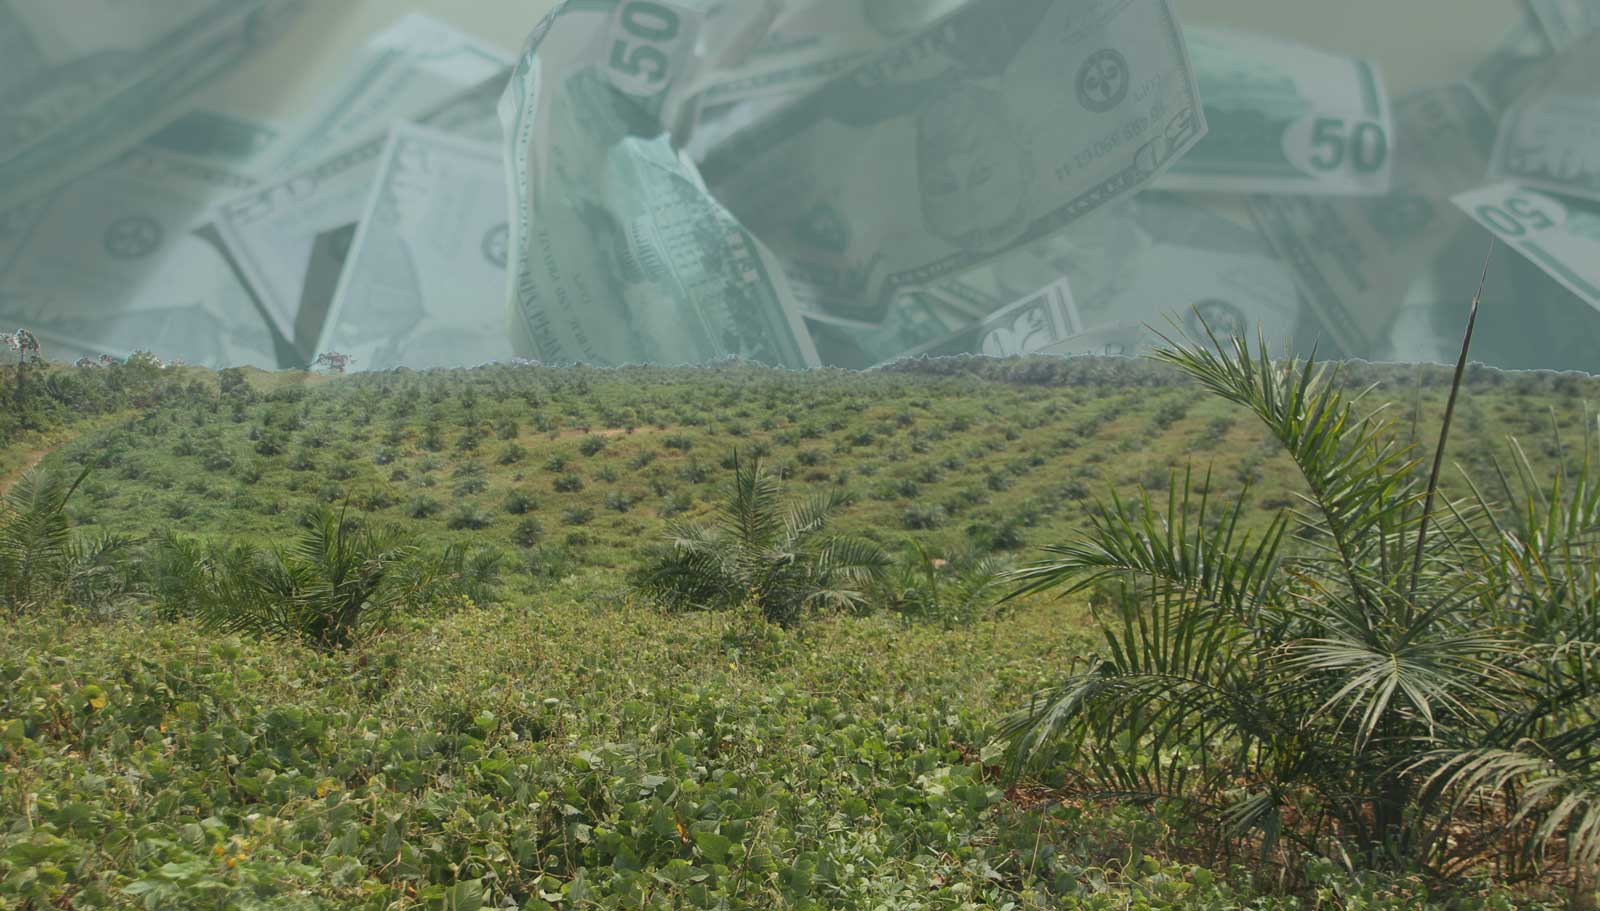 Recently planted oil palm plantation near Lokumete with crumpled money